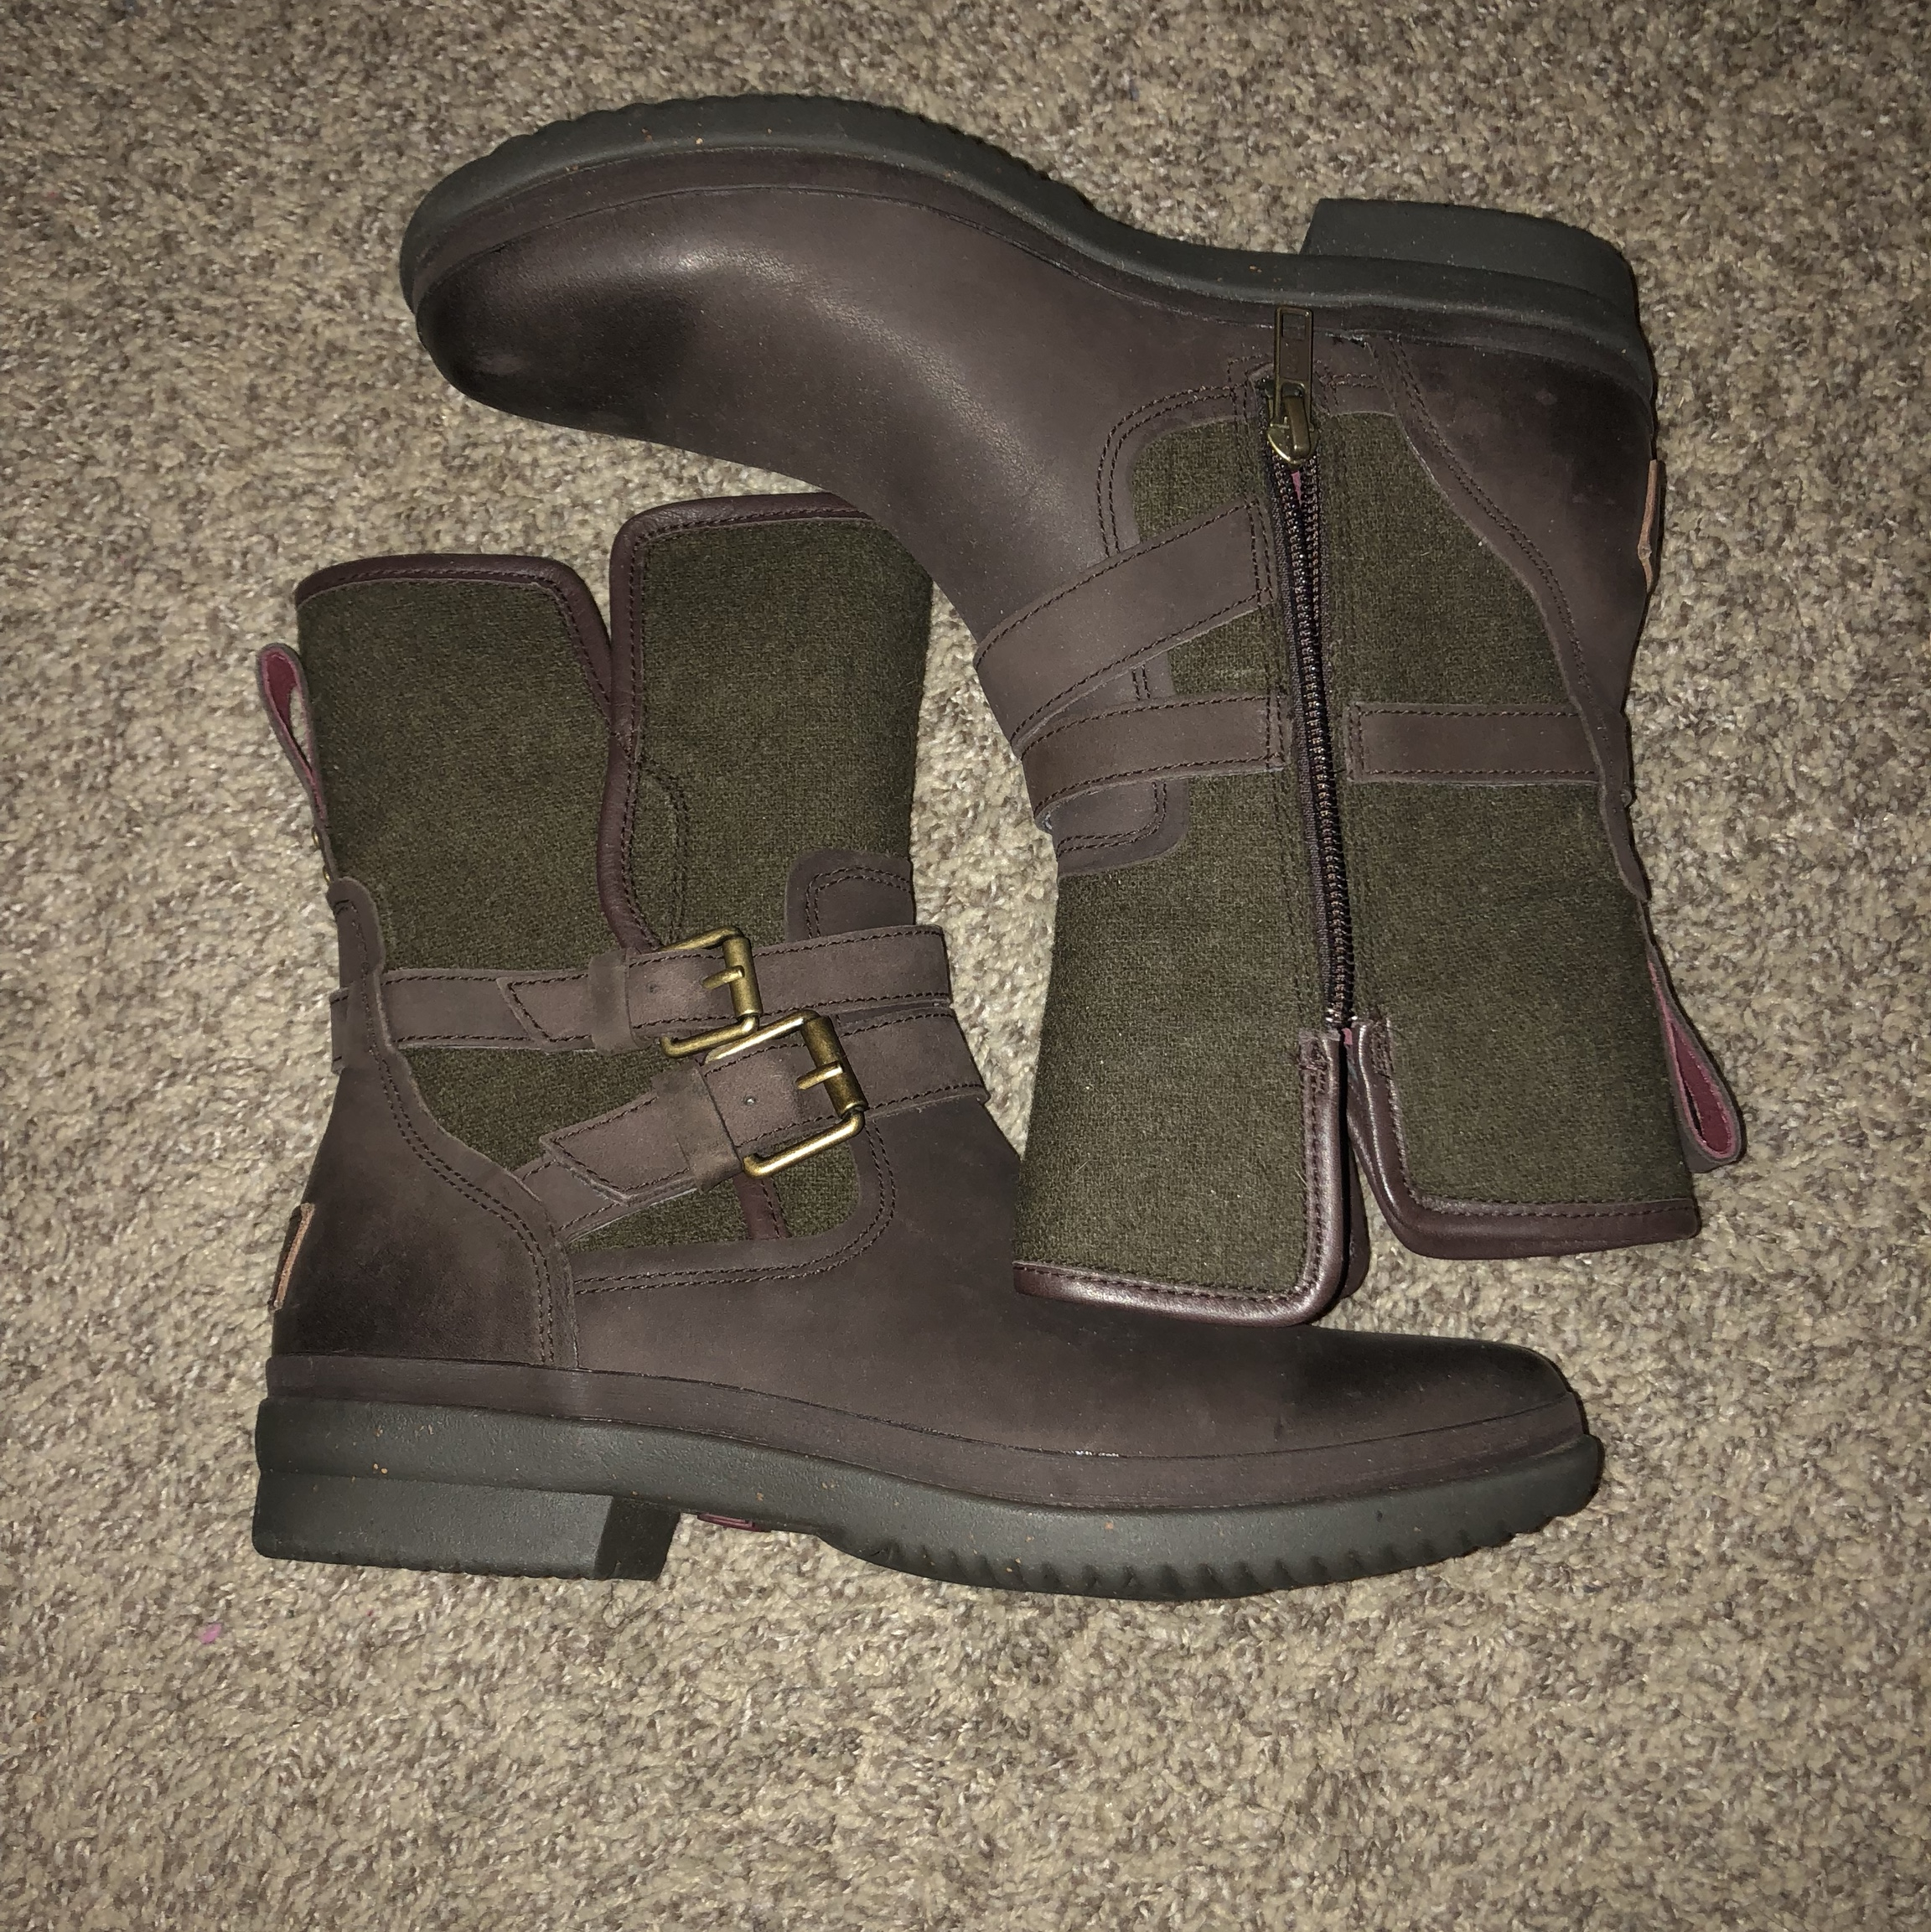 b4819931fa6 UGG Australia Women's Simmens Leather... - Depop